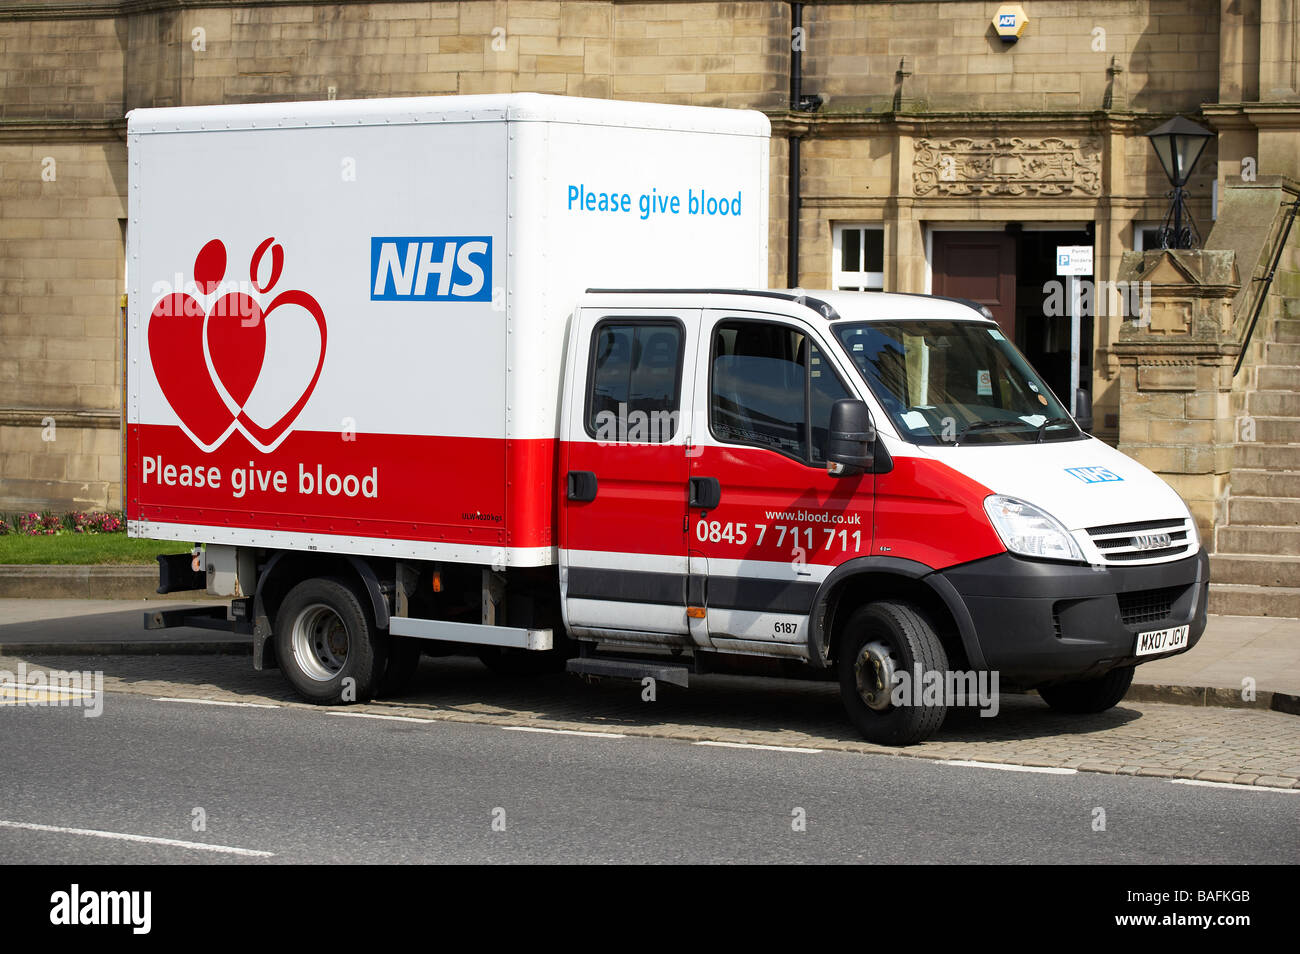 NATIONAL HEALTH SERVICE NHS BLOOD DONOR VEHICLE - Stock Image